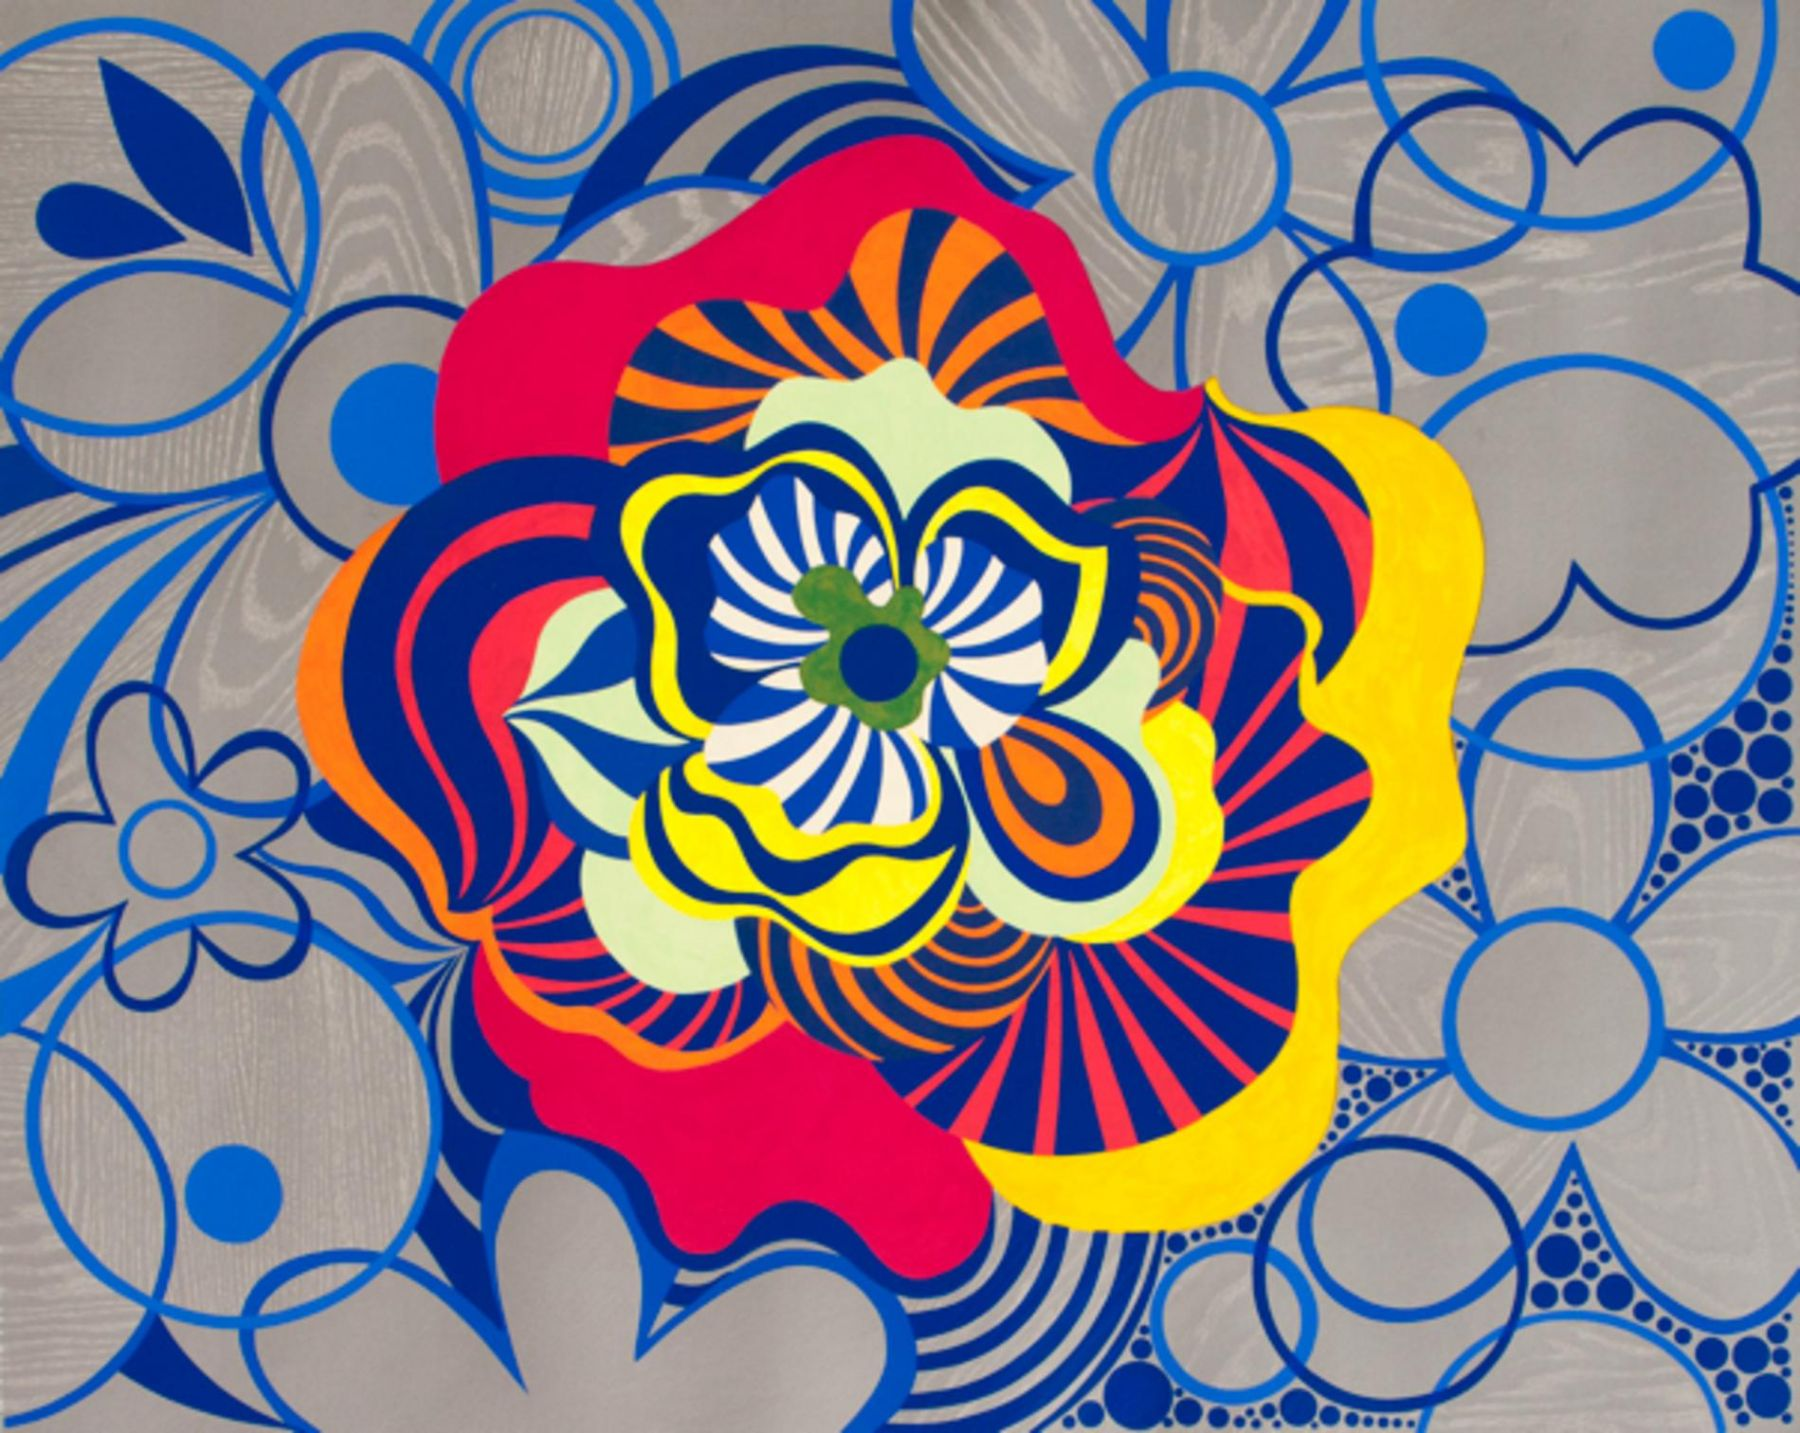 , BEATRIZ MILHAZES Snake Dreaming, 2013 Woodblock and screenprint on Saunders 425g paper 36 7/8 x 46 3/8 in. (93.7 x 117.8 cm) Edition of 40